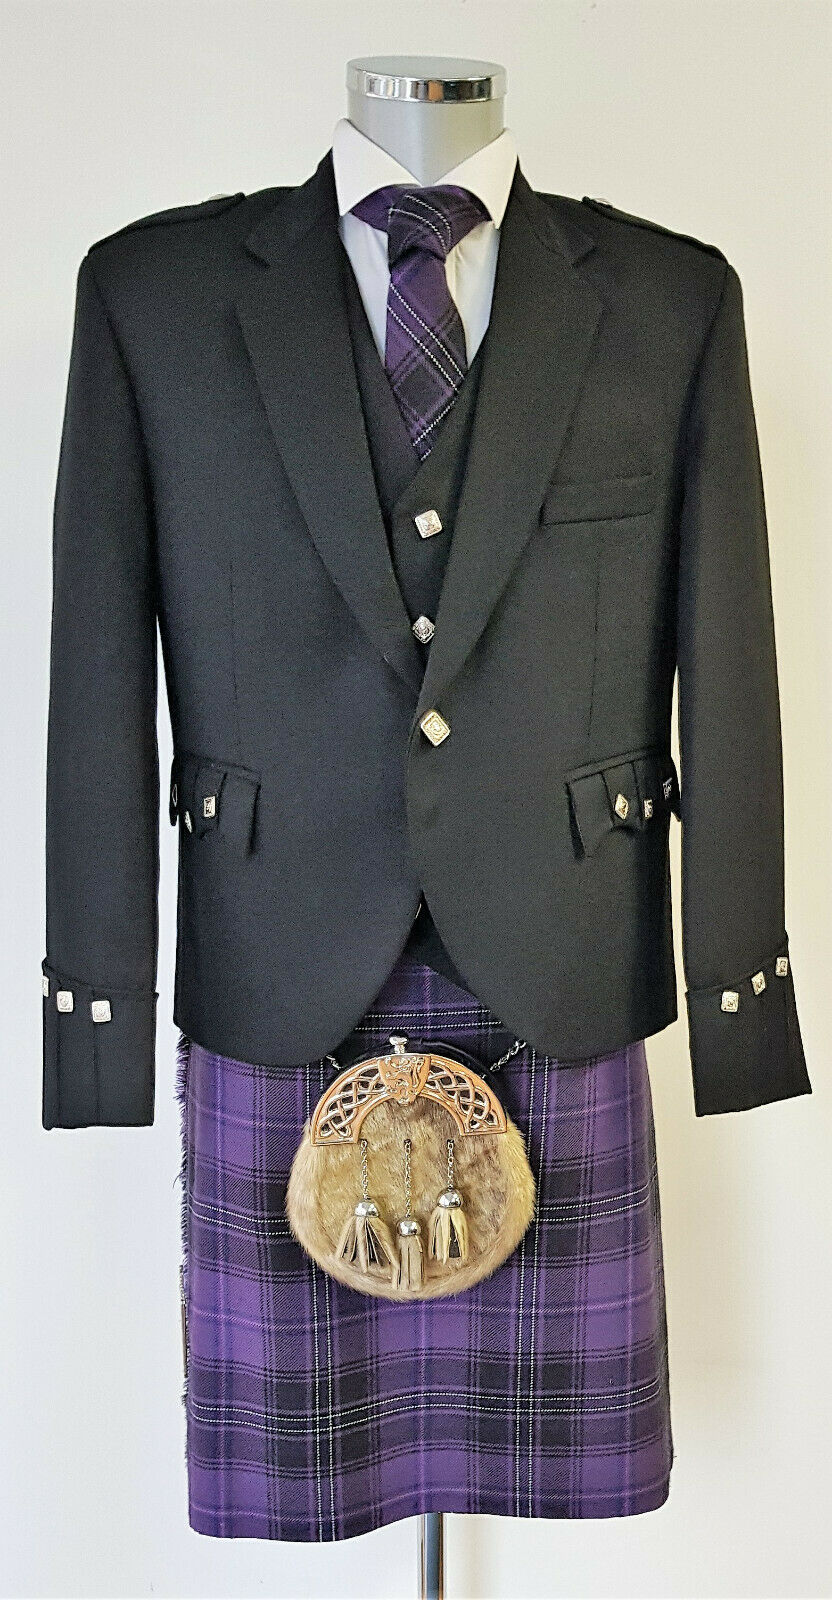 Chieftain Passion Of Scotland Purple 8 Yard DELUXE Kilt Exclusive to us